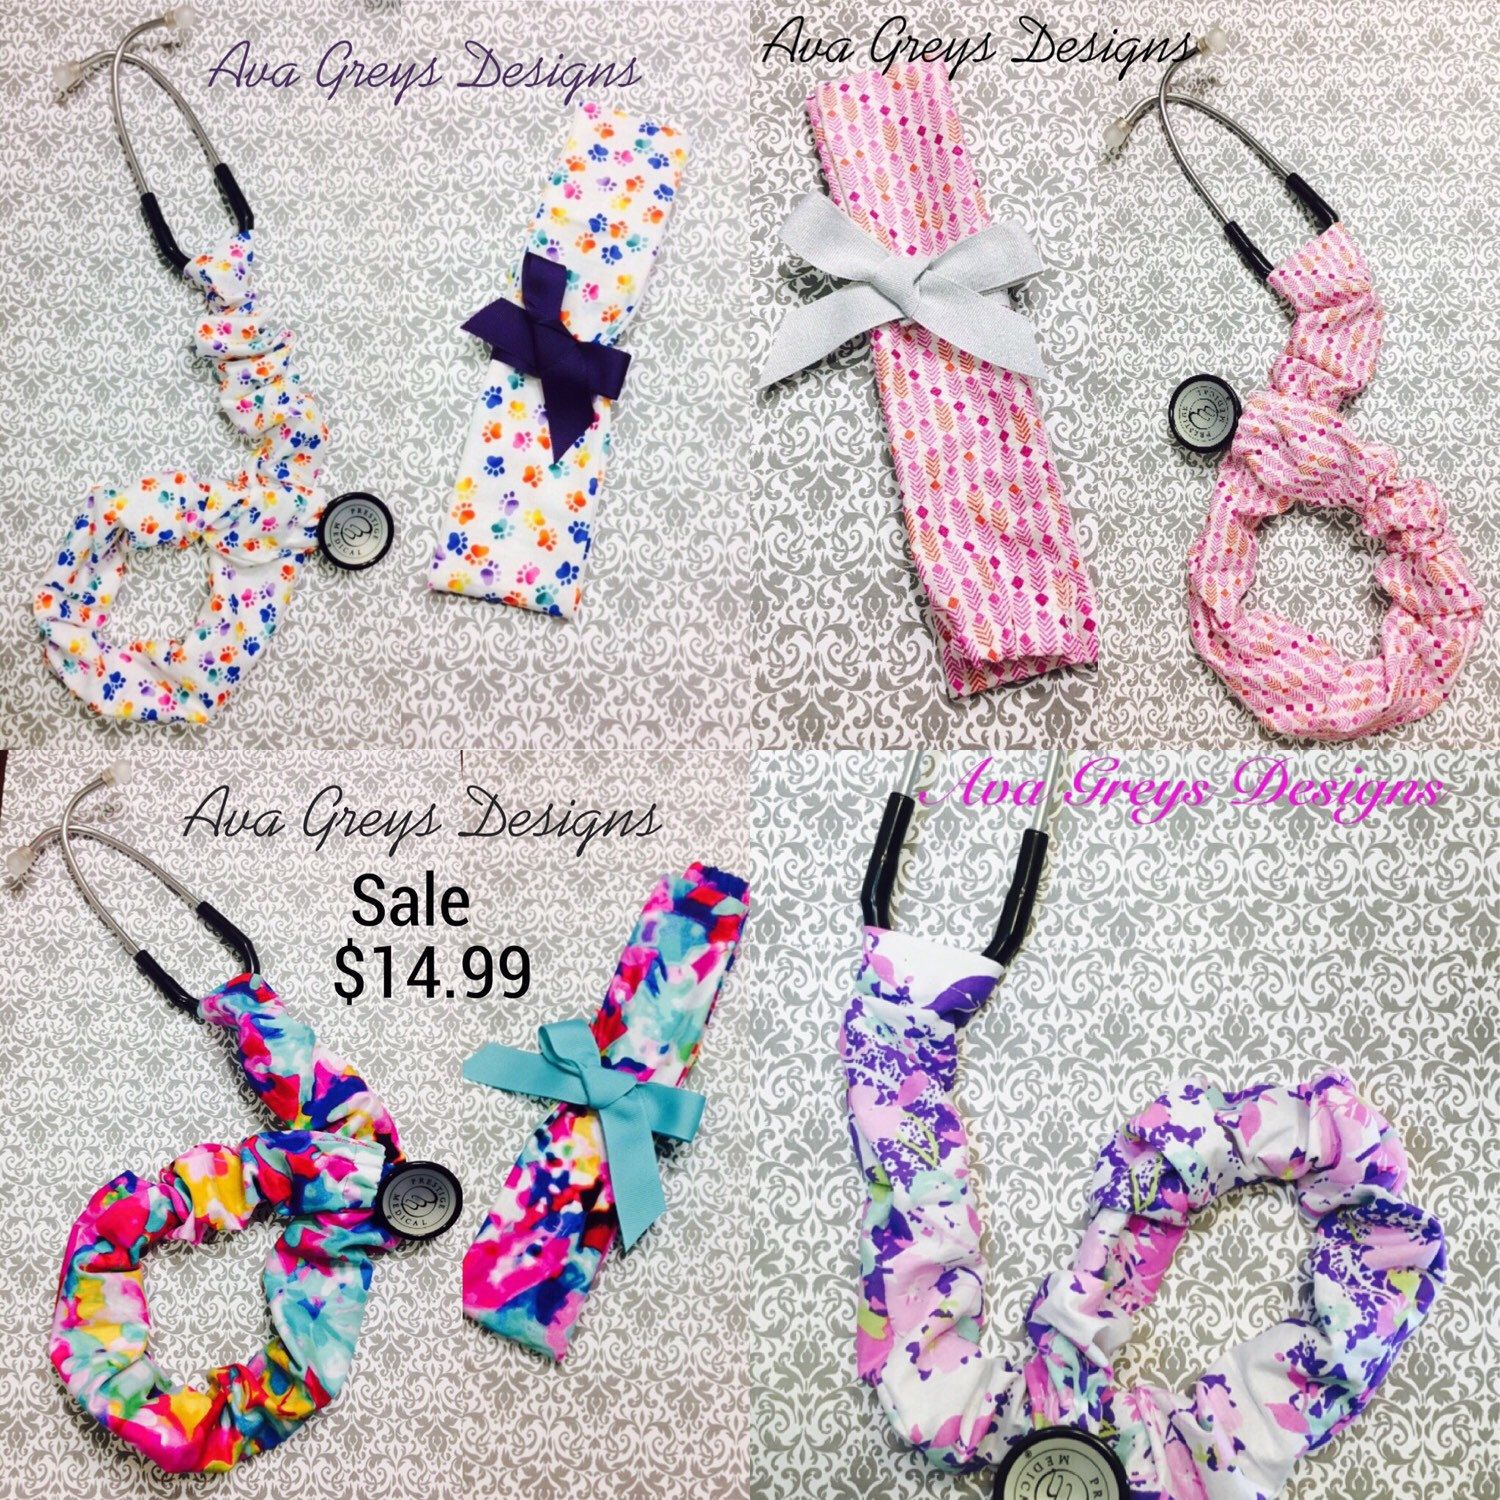 Sale!Use The Promo Code STETHOSCOPE15 And Save 15% Off